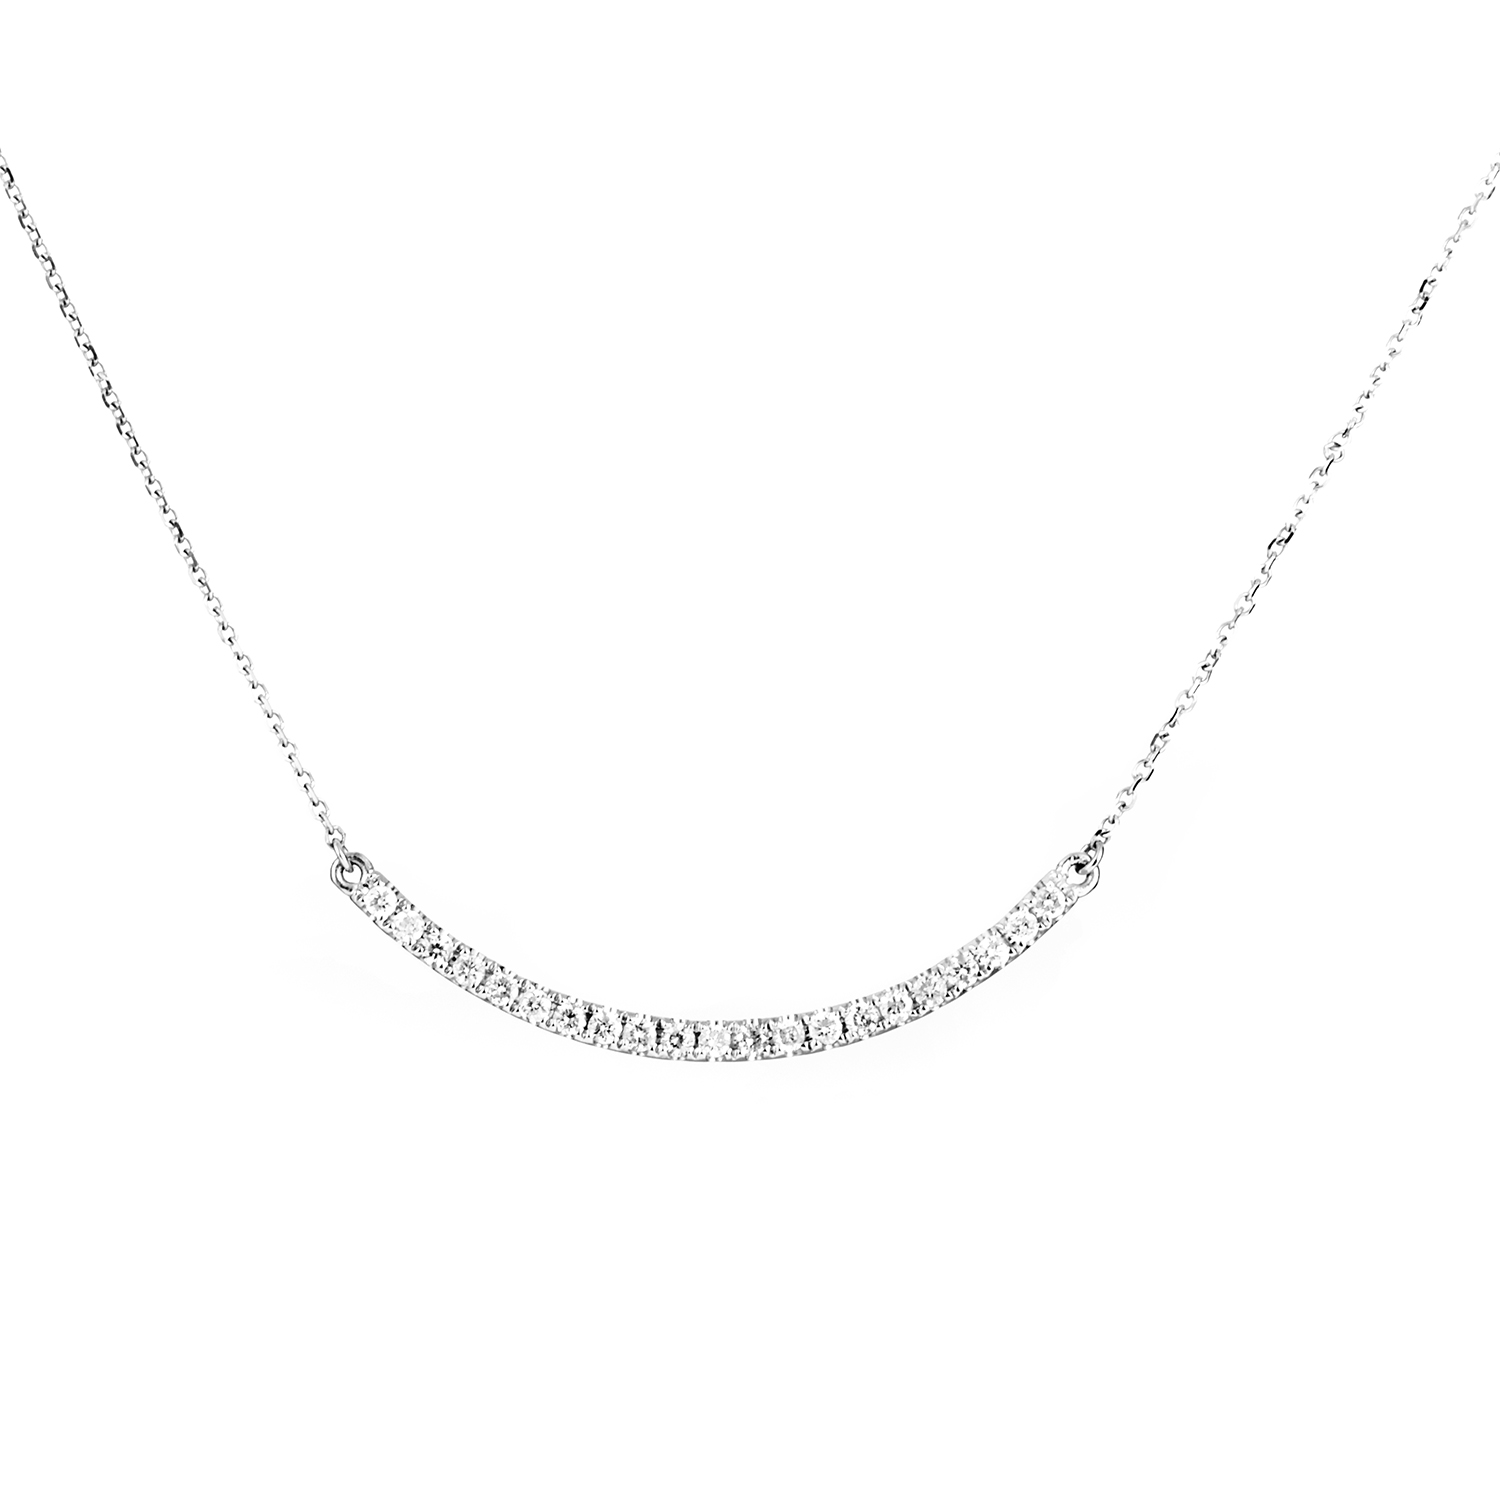 Women's 14K White Gold Curved Diamond Pendant Necklace APD-10016W14K